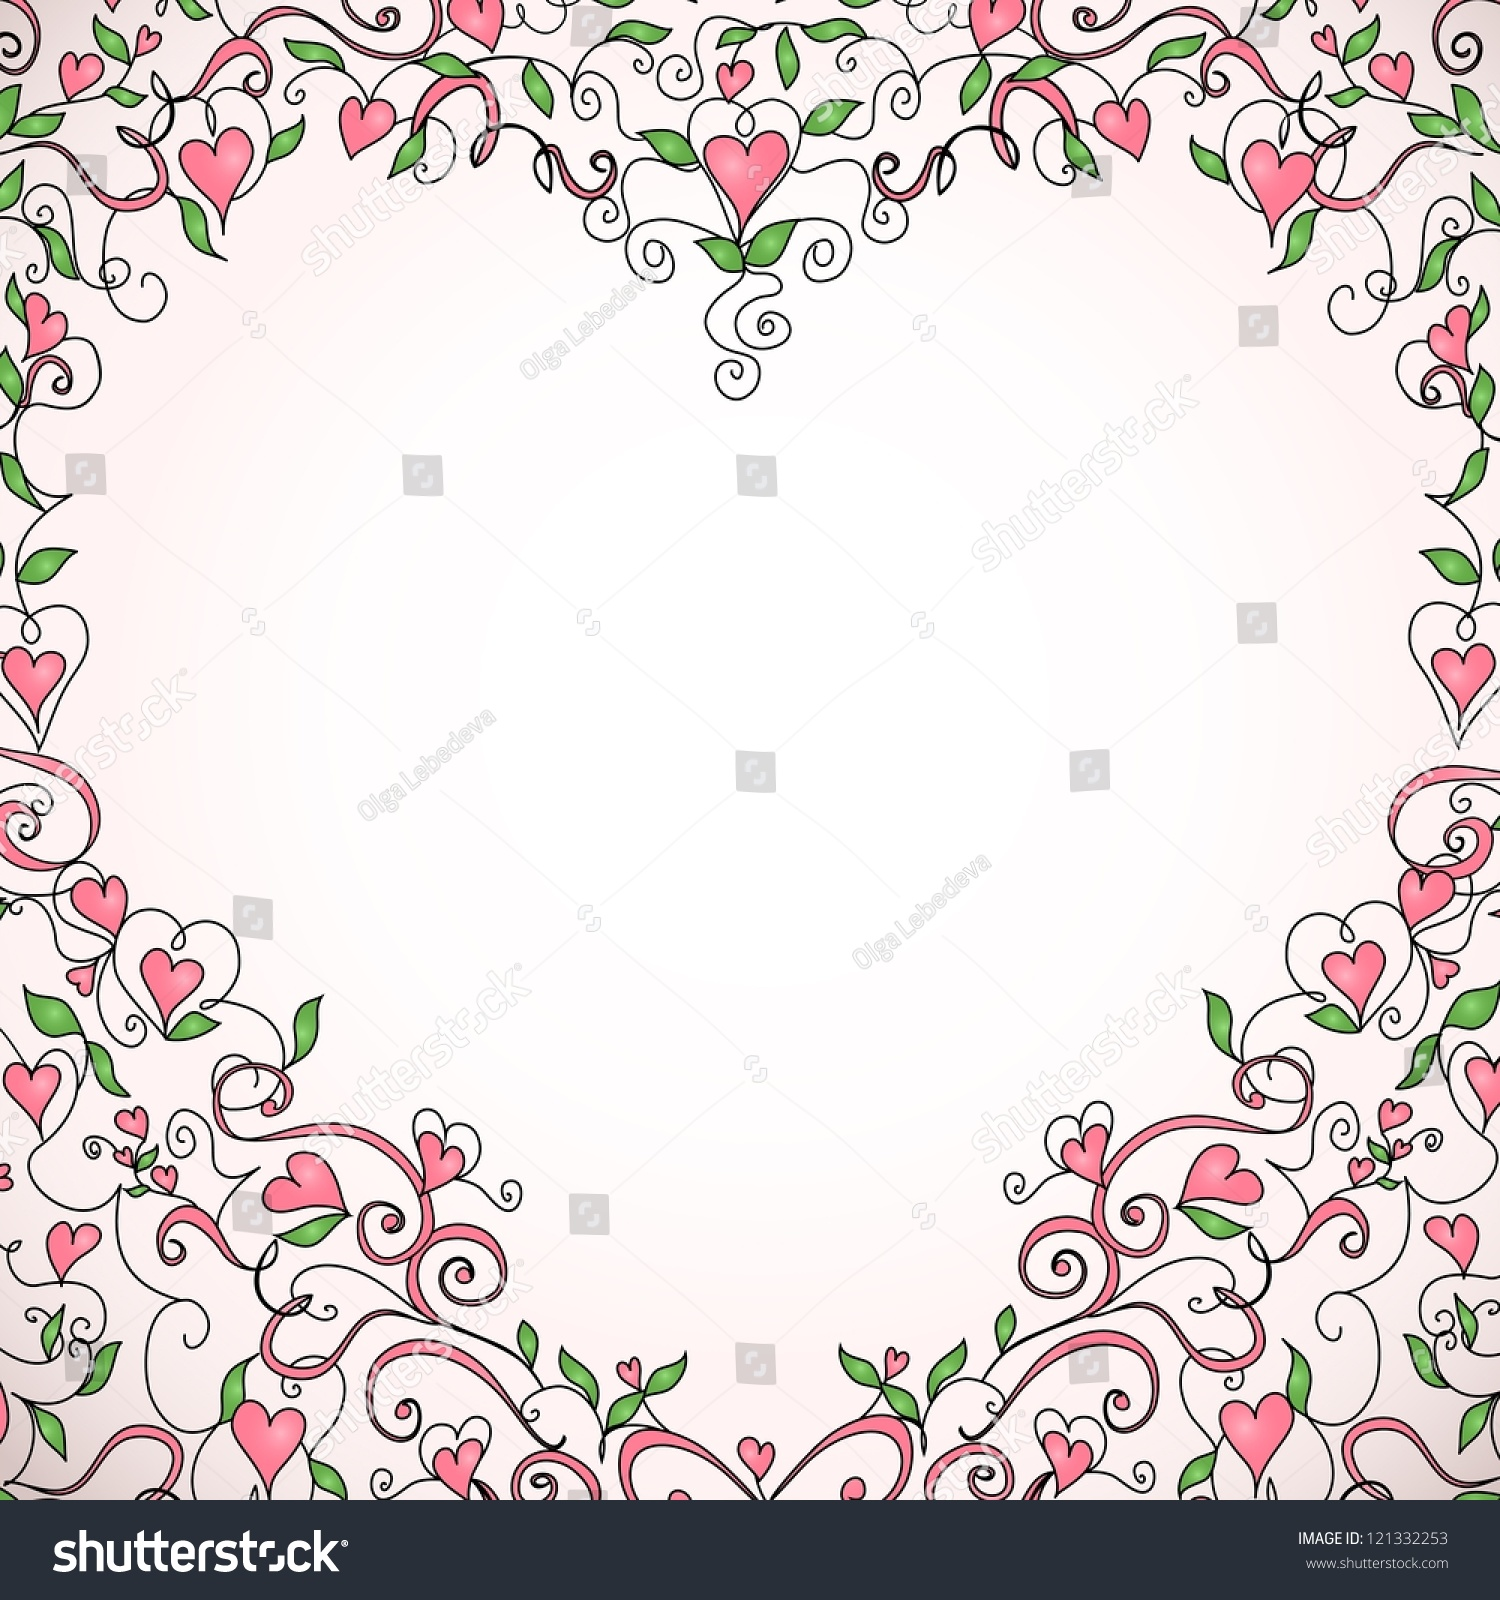 heart shaped frame with space for your text floral ornament with hearts template